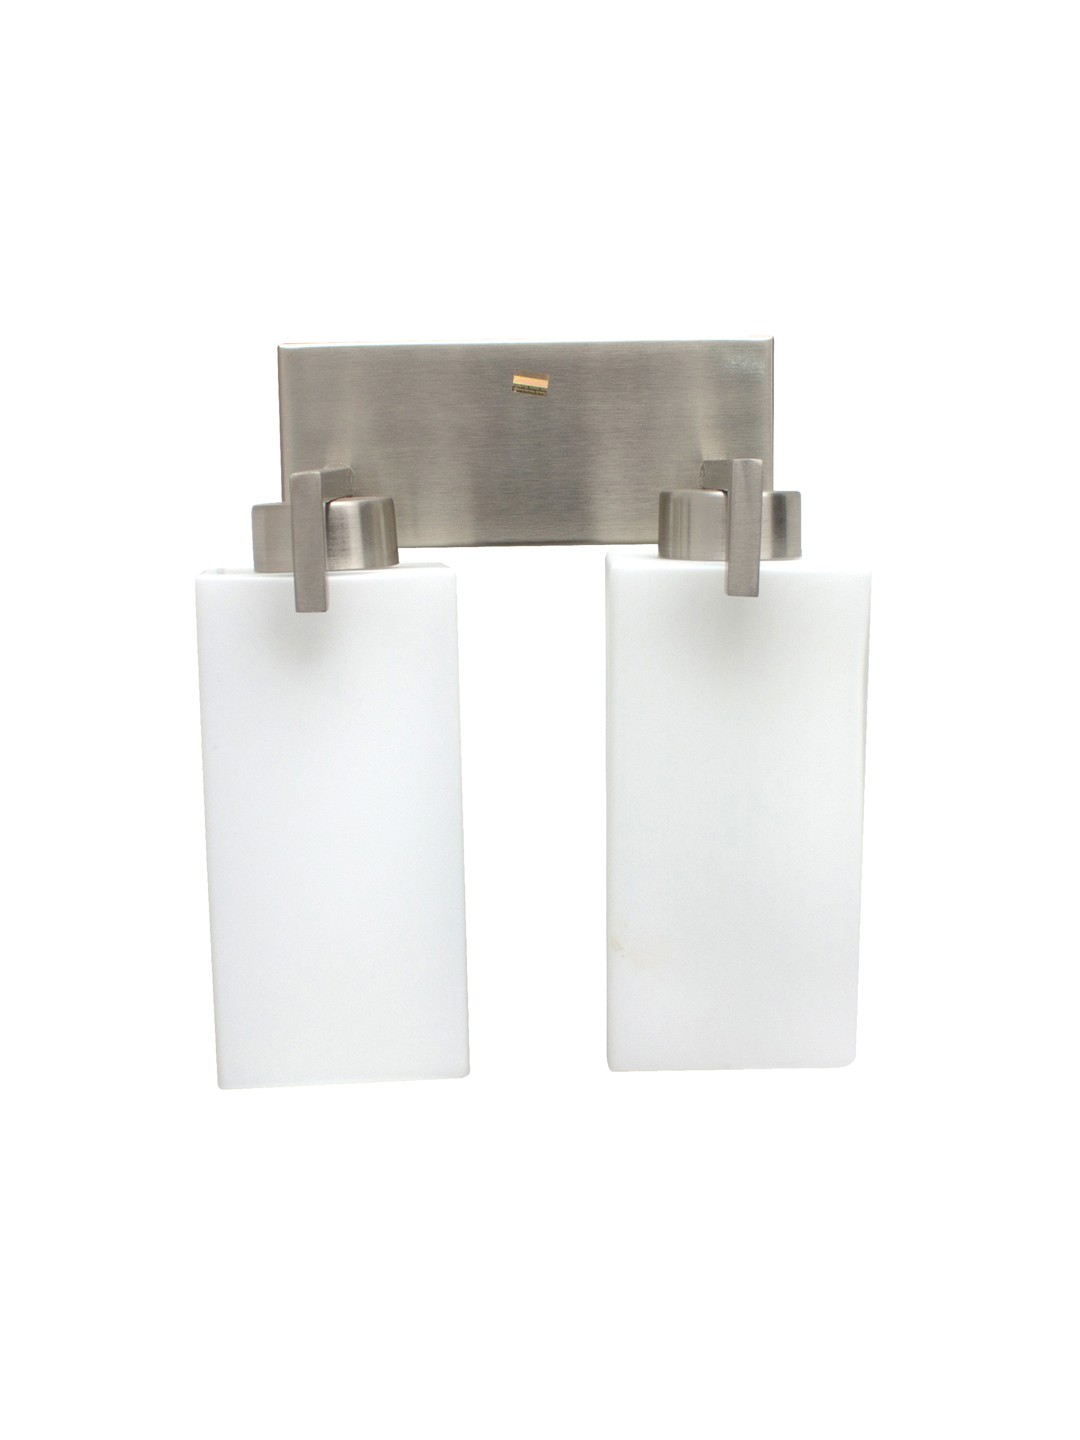 Clean Modern Cuboid Double Wall Light